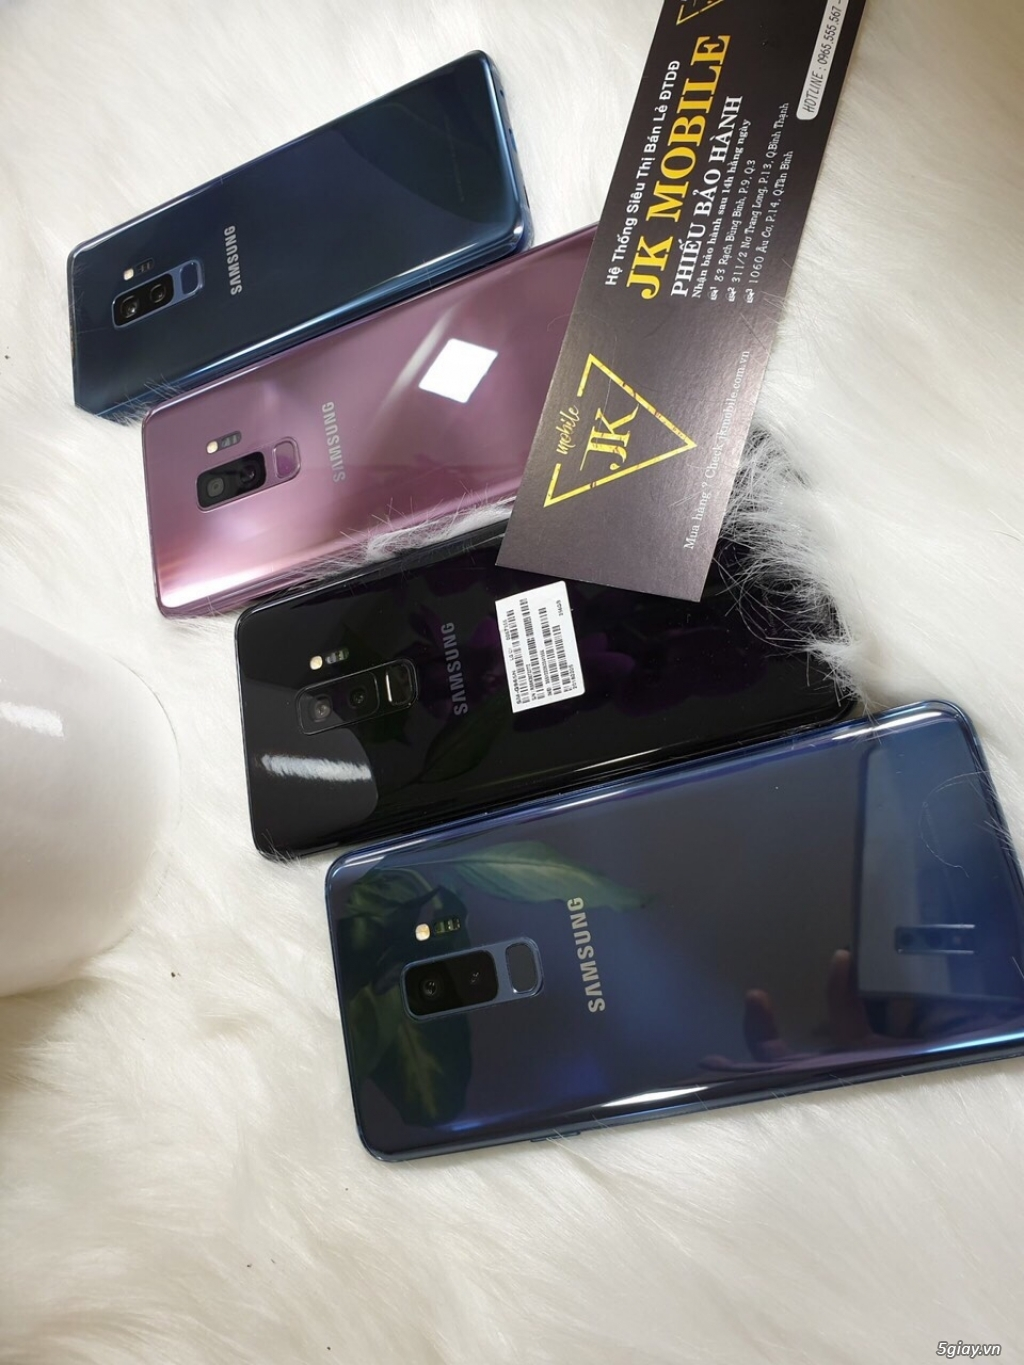 ss galaxy s8,s8 plus, s9,s9 plus - 5